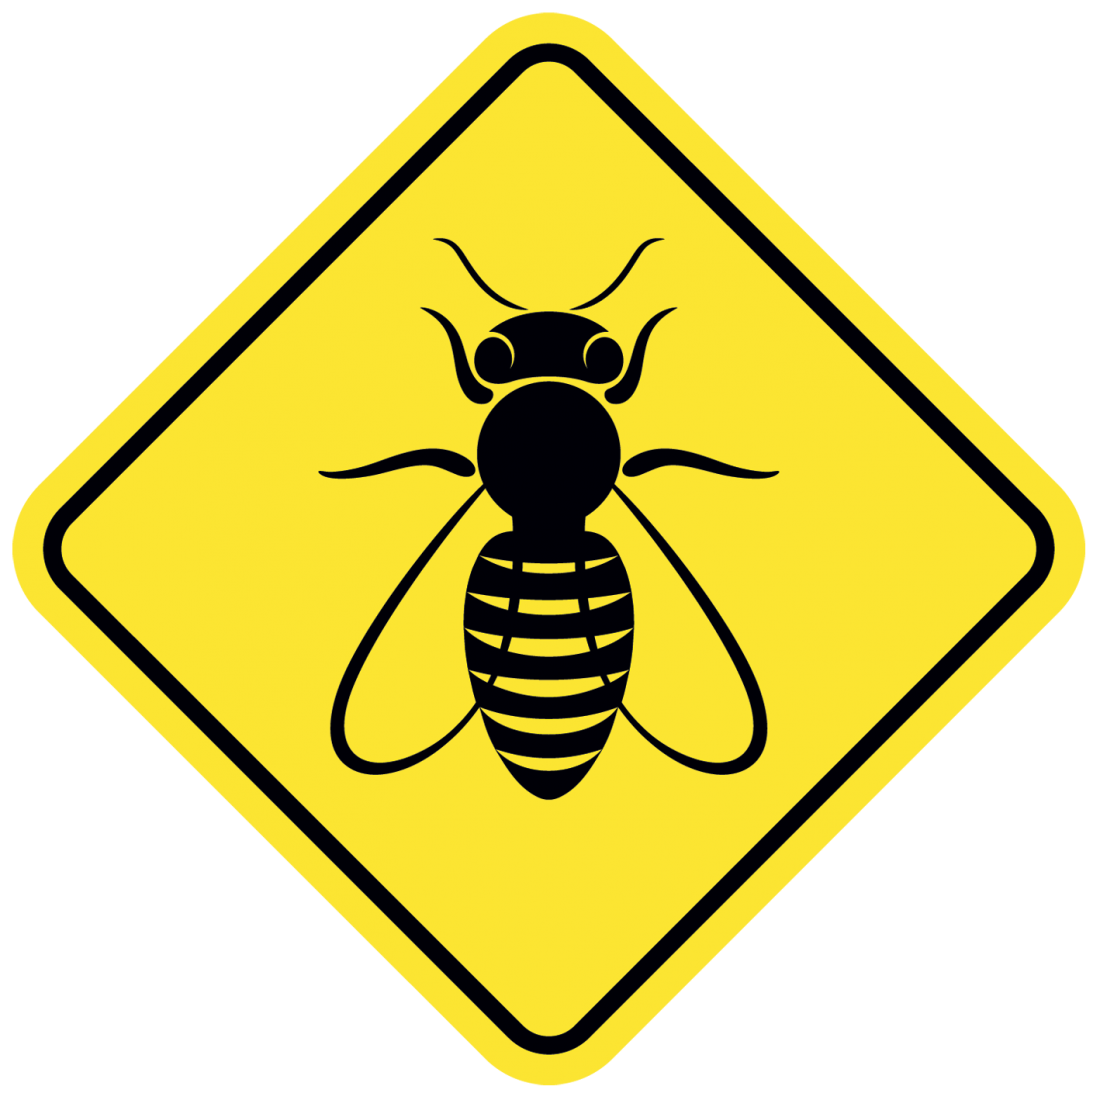 bee danger illustration